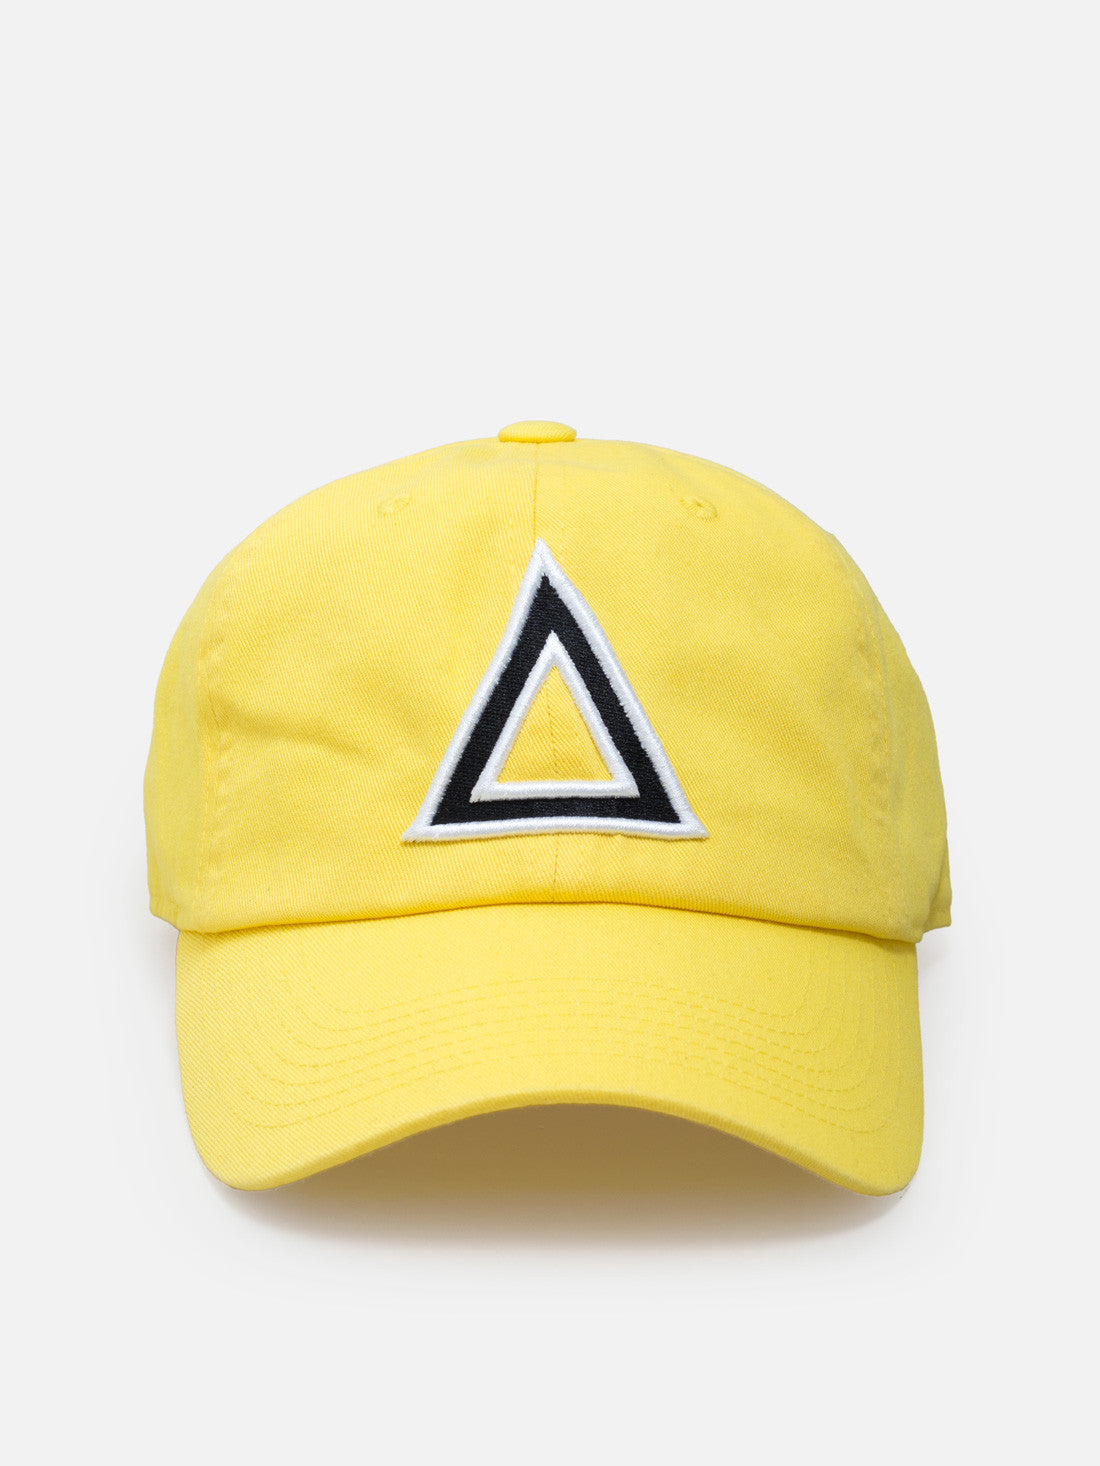 Dad hat yellow - blk/white tri - Triangulo Swag